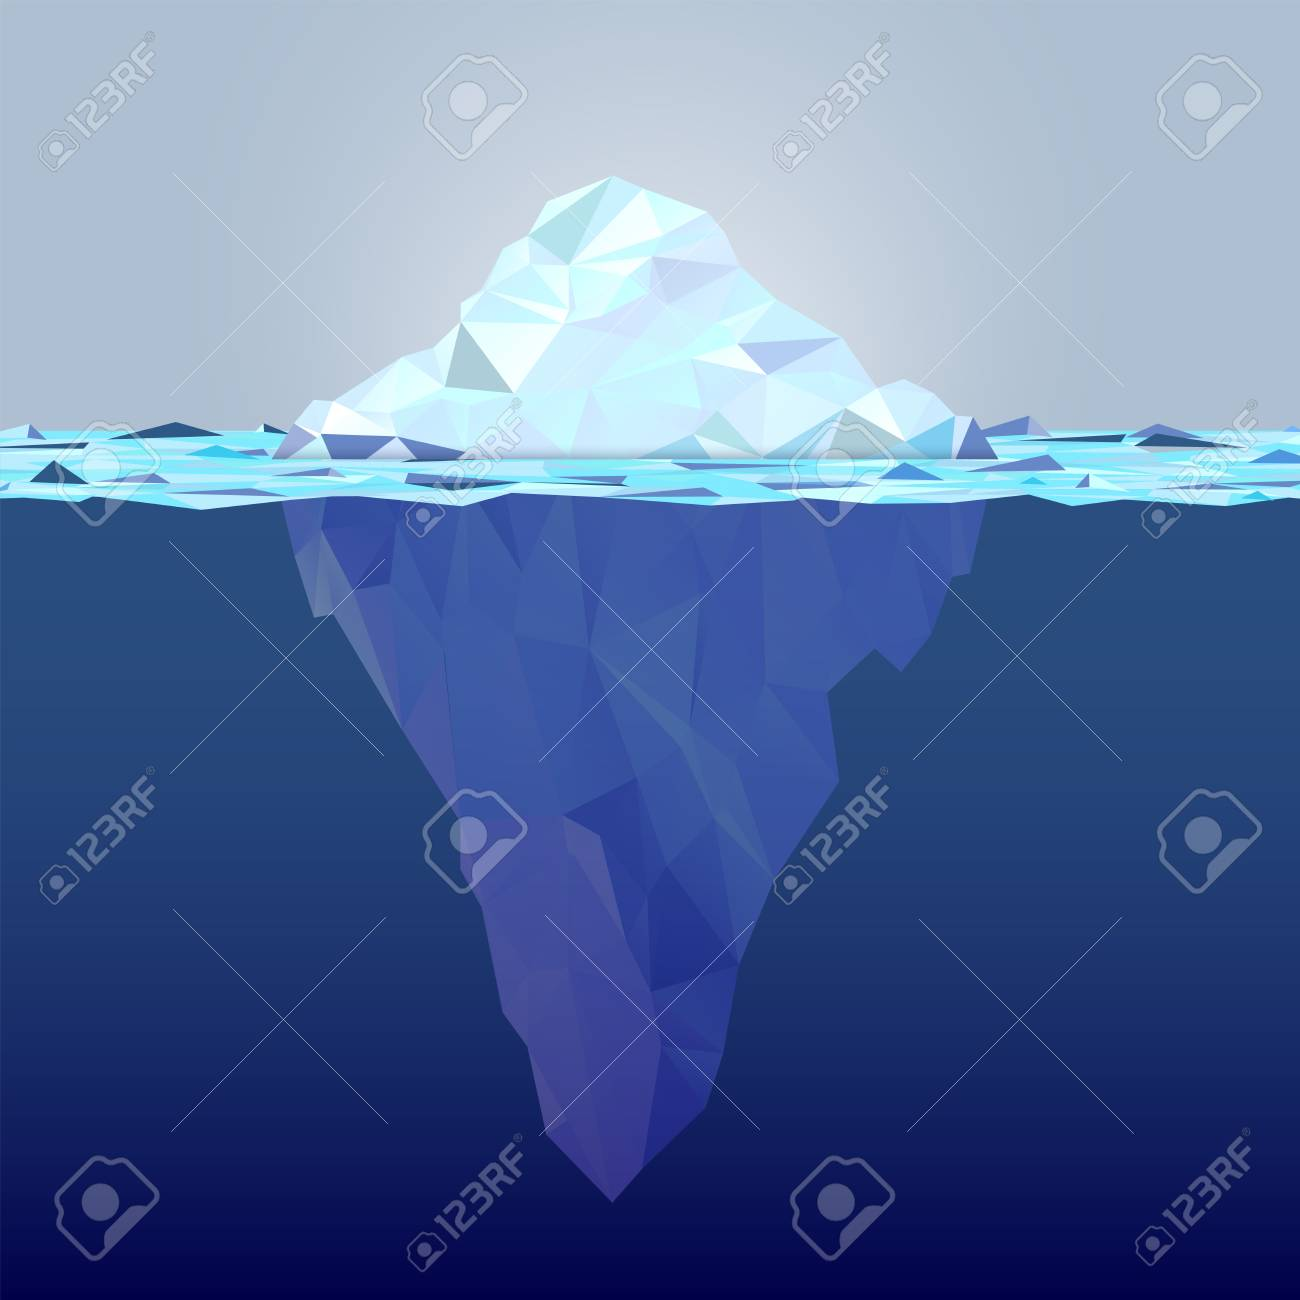 Underwater iceberg made from triangle shapes - global warming concept. Copy space for your text. Vector illustration. - 121427817